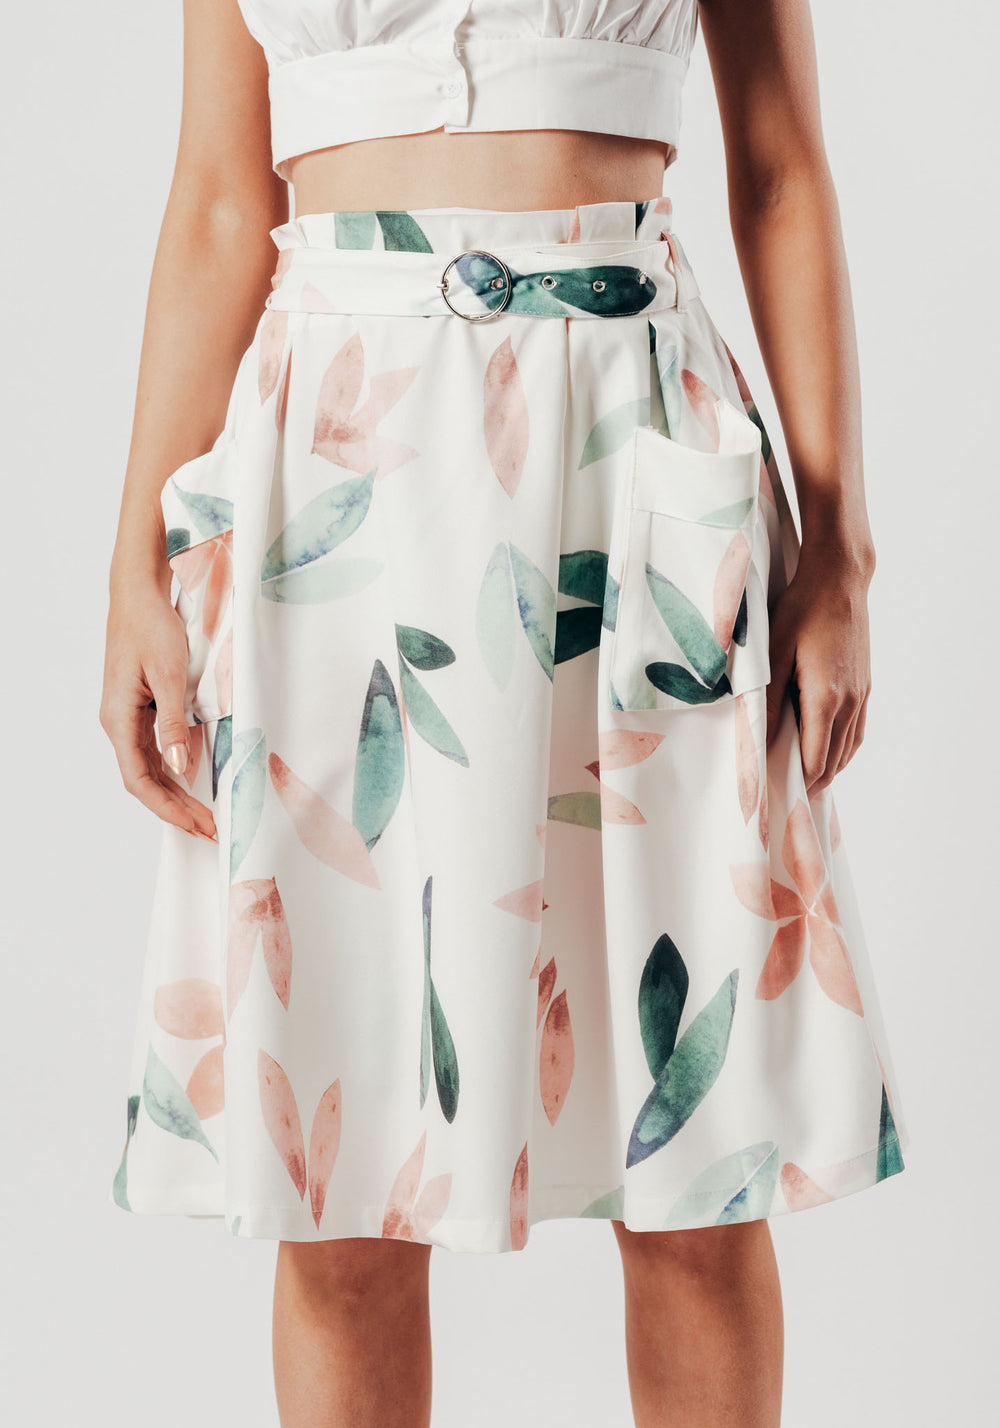 White Leaf Print Skirt With Side Pockets and Belt